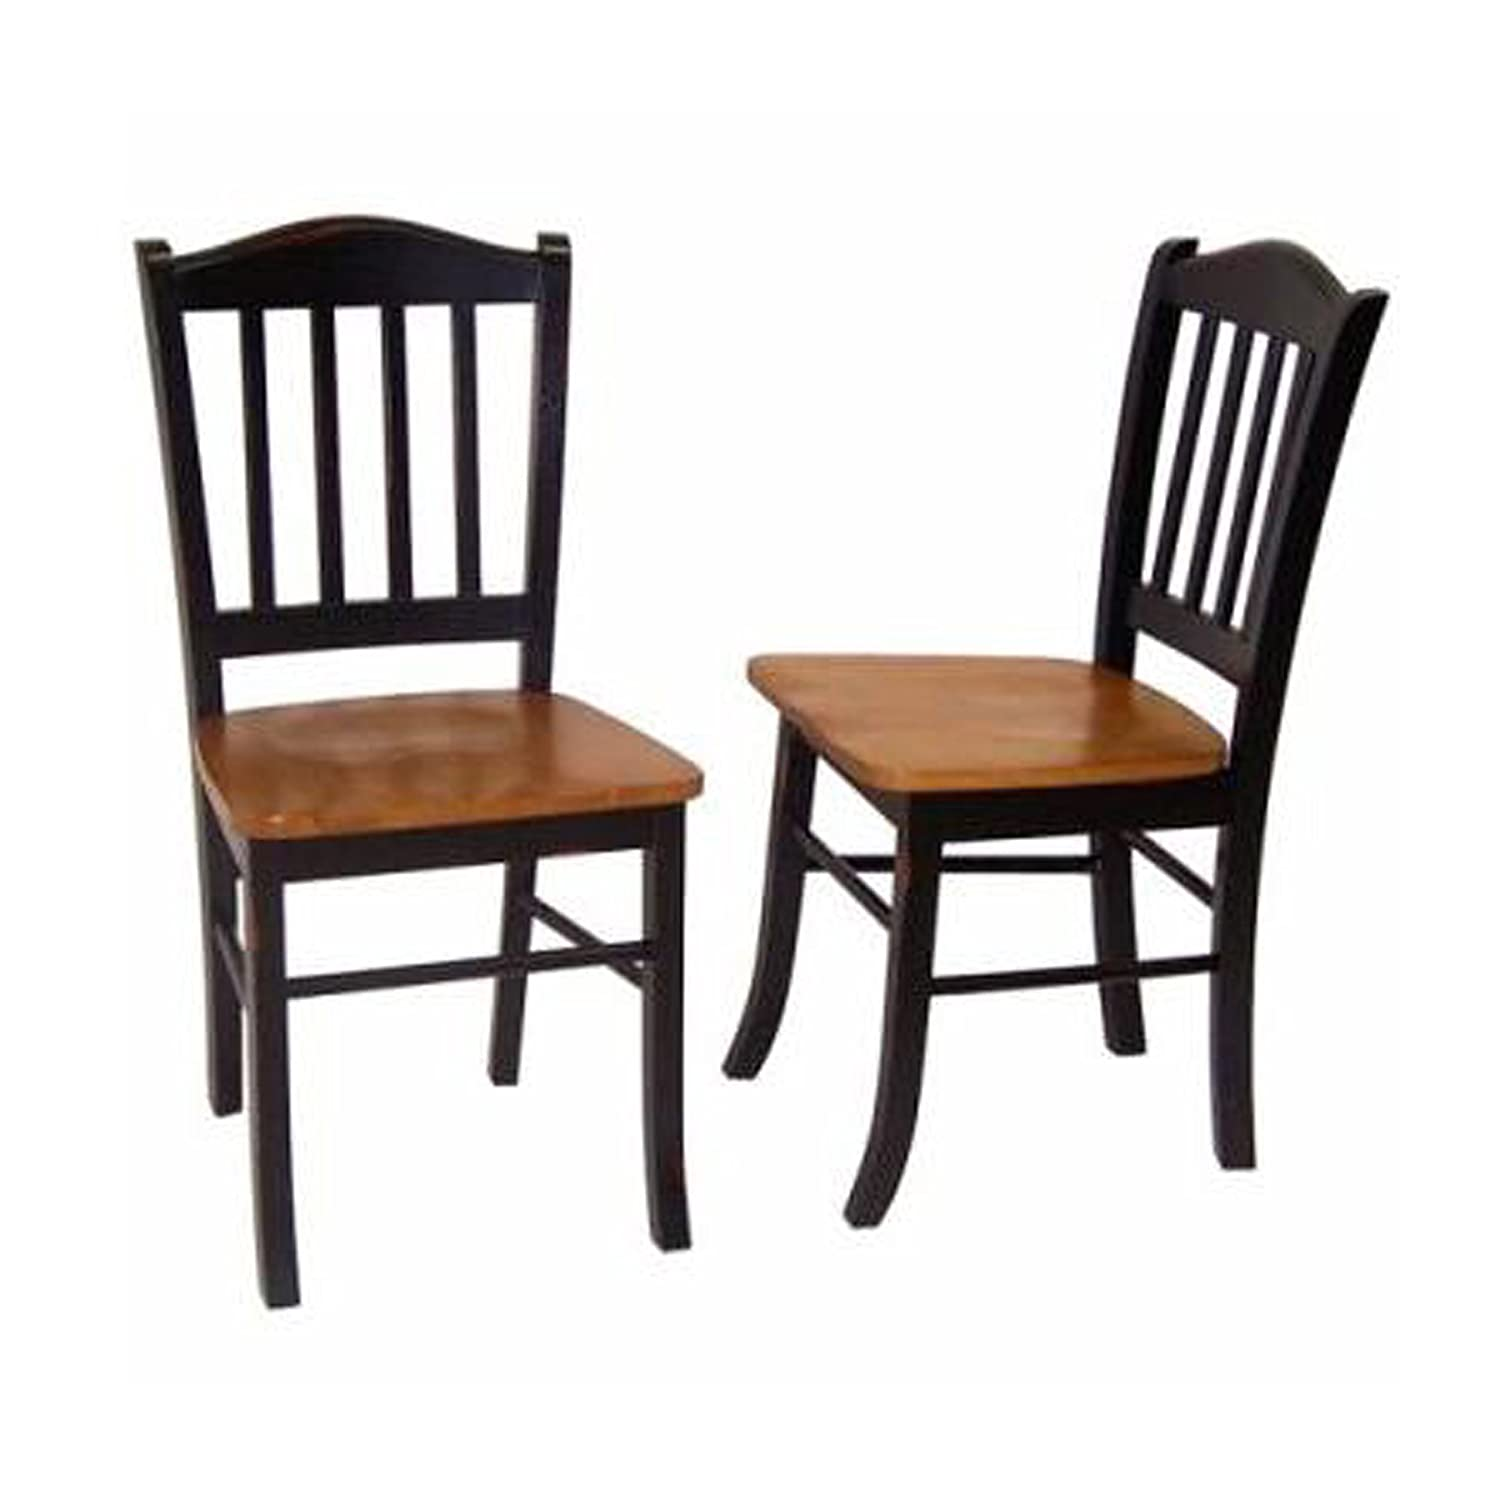 Amazon.com Boraam 30536 Shaker Chair Black/Oak Set of 2 Kitchen u0026 Dining  sc 1 st  Amazon.com : black wooden chair - Cheerinfomania.Com